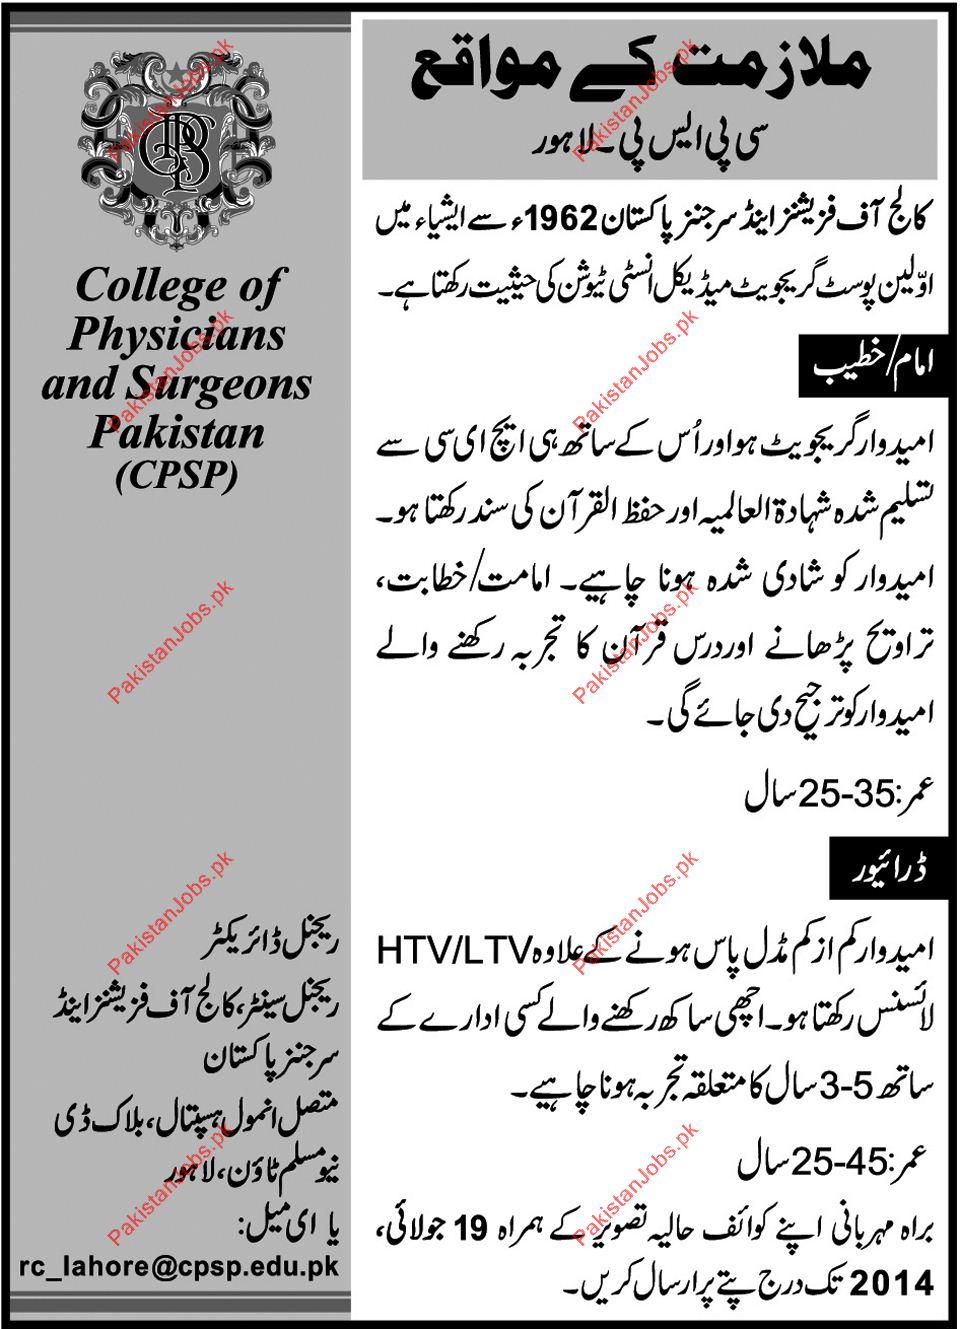 college of physicians and surgeons pakistan  cpsp